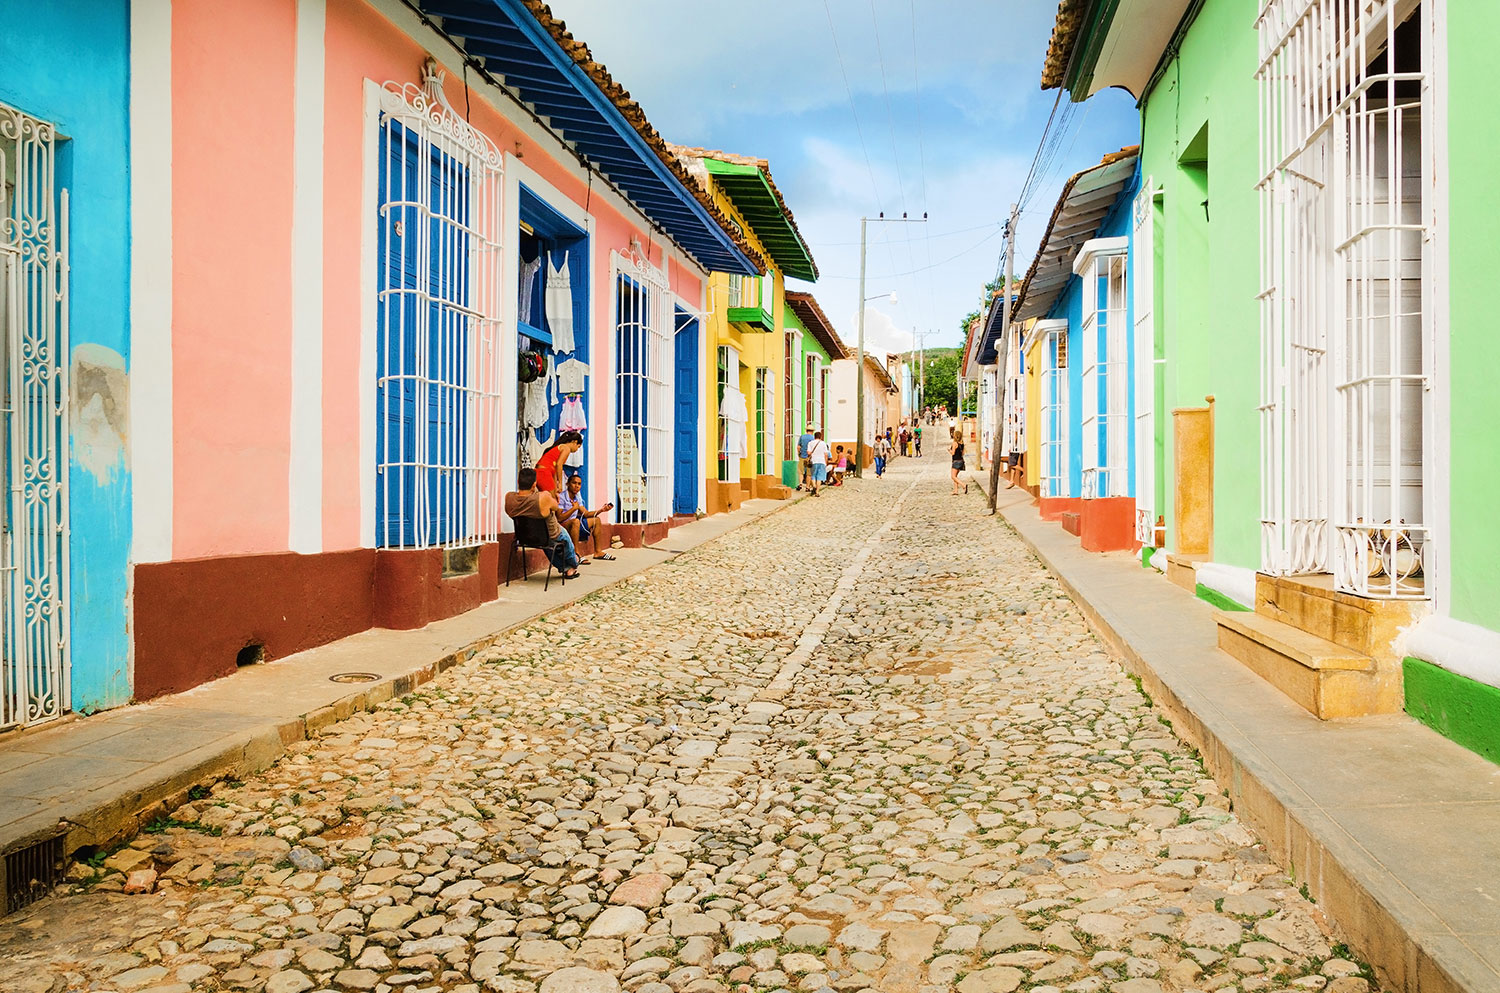 Stone road lined by colorful houses in Cuba